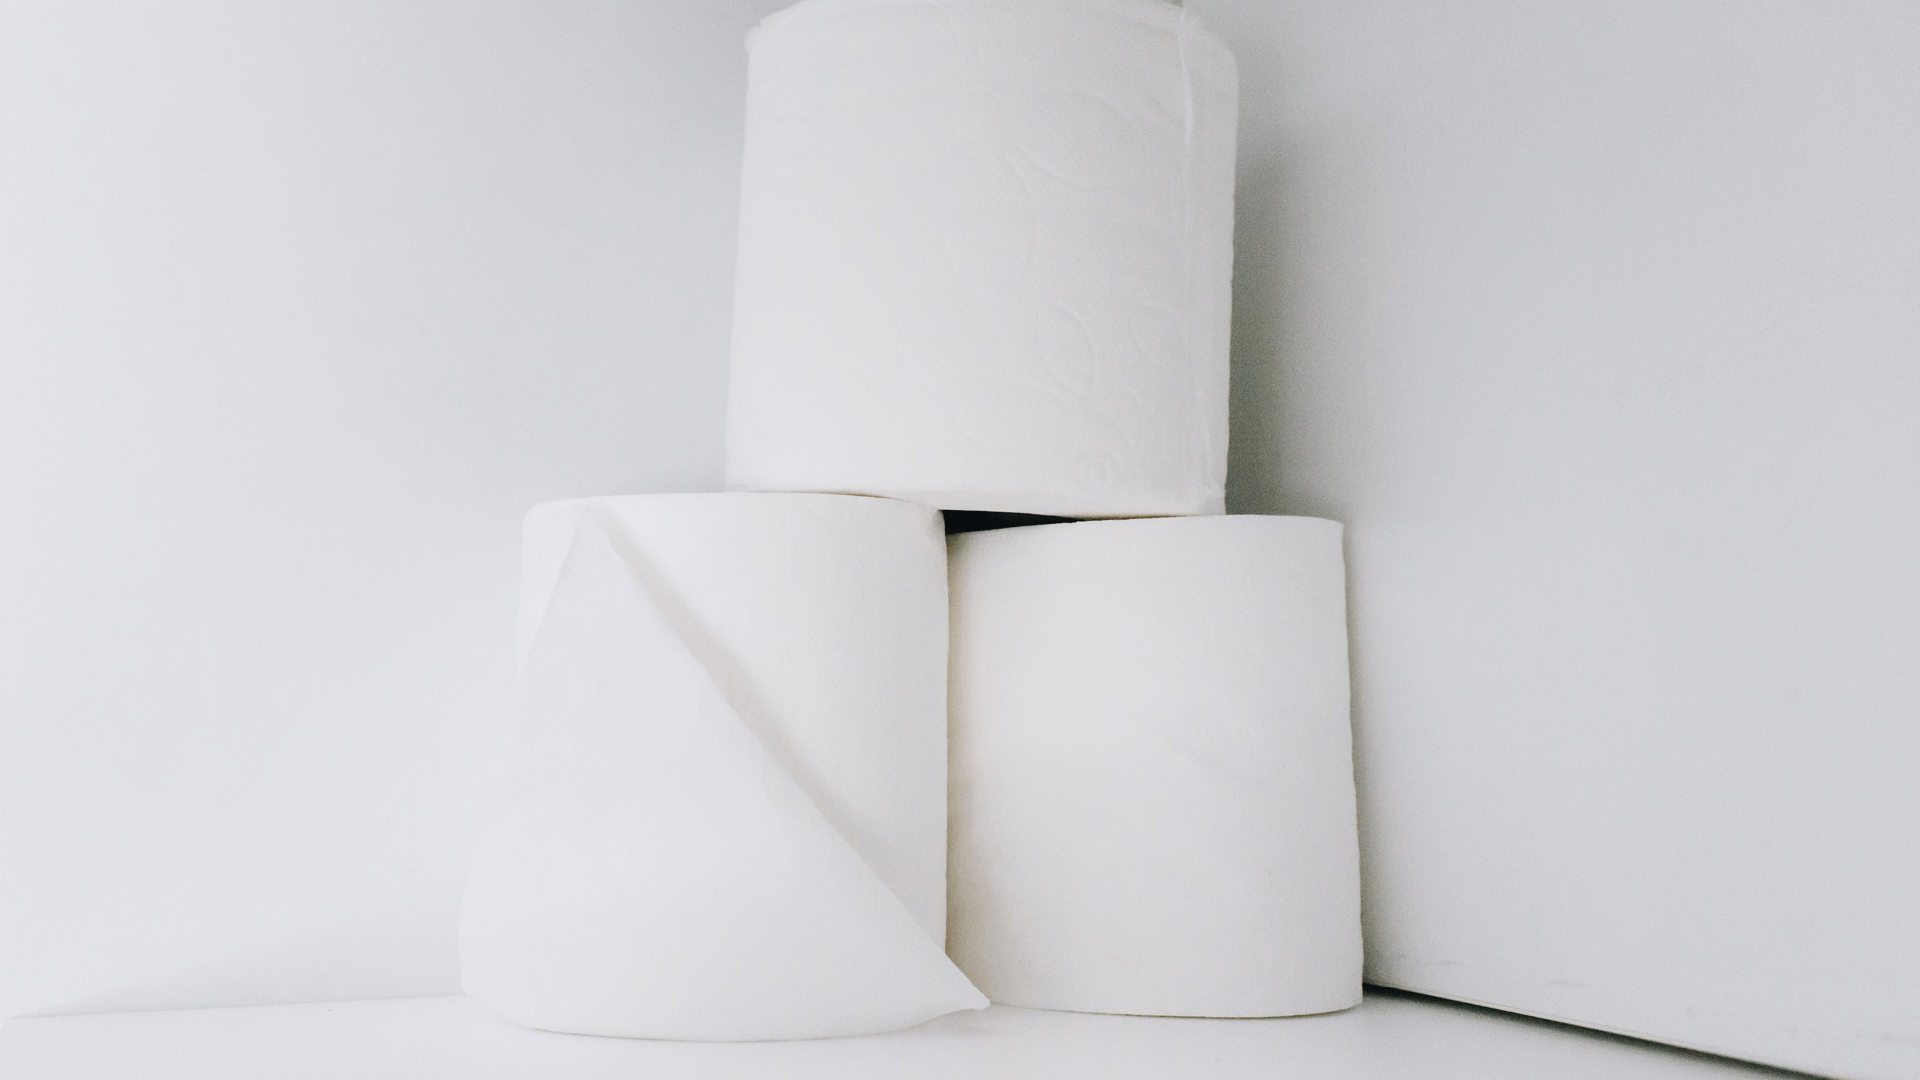 How Much Does Toilet Paper Cost?